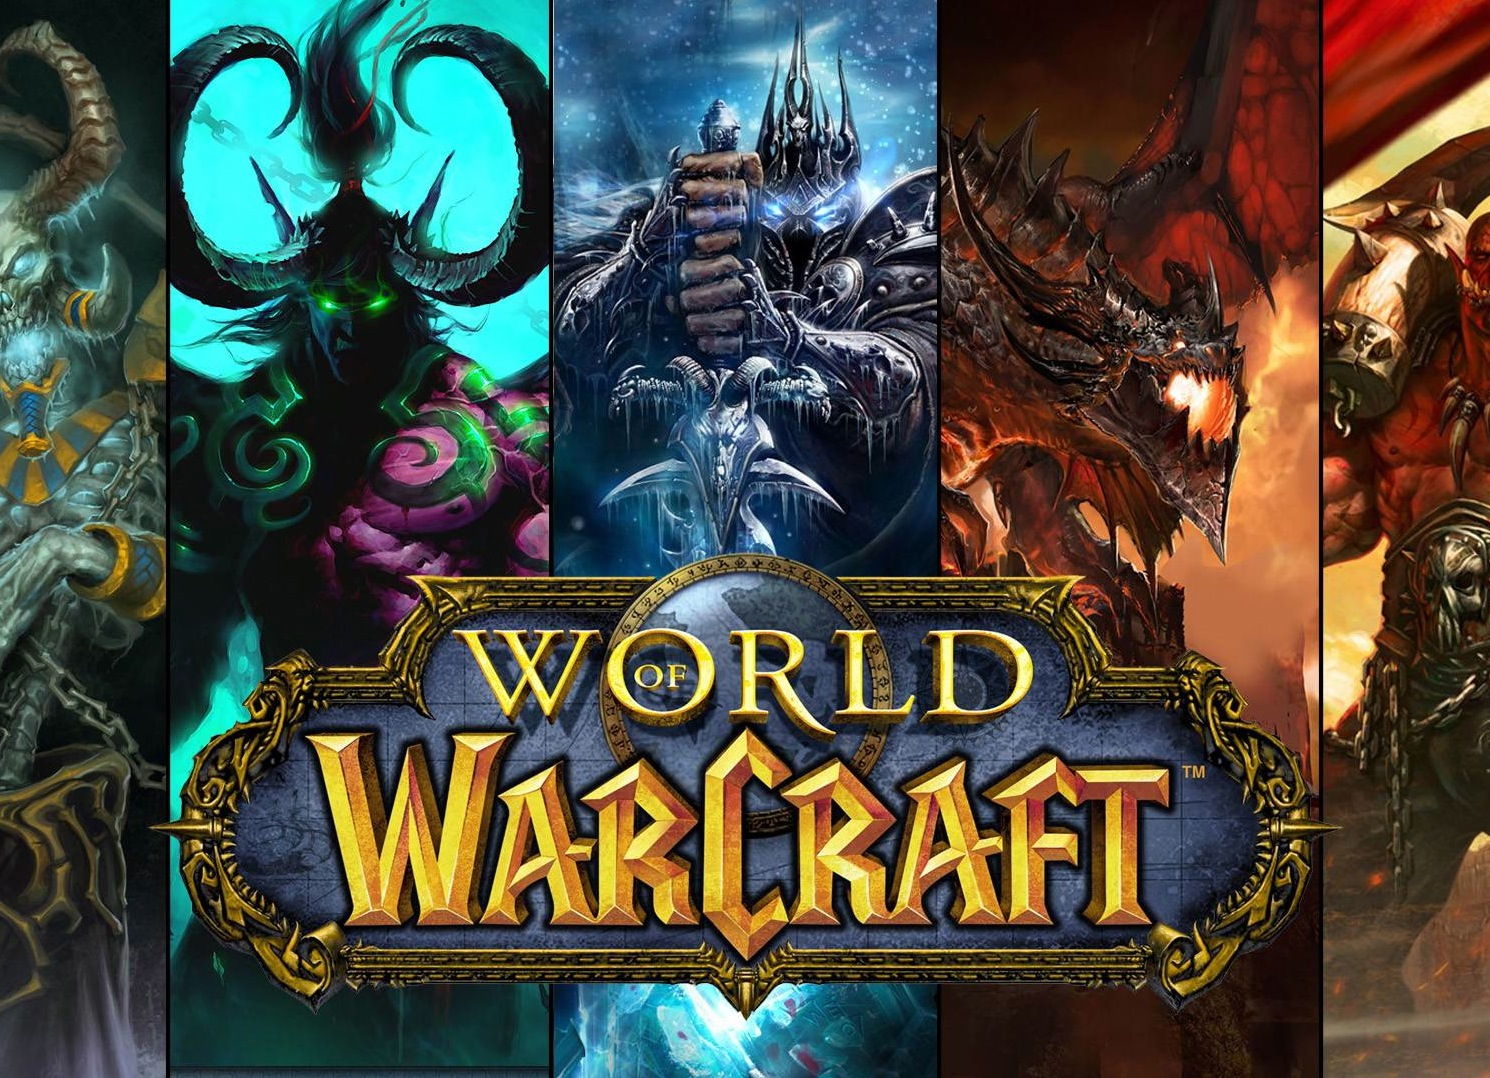 'World of Warcraft: Legion' Set To Be Next Game In 'World of Warcraft' Expansion